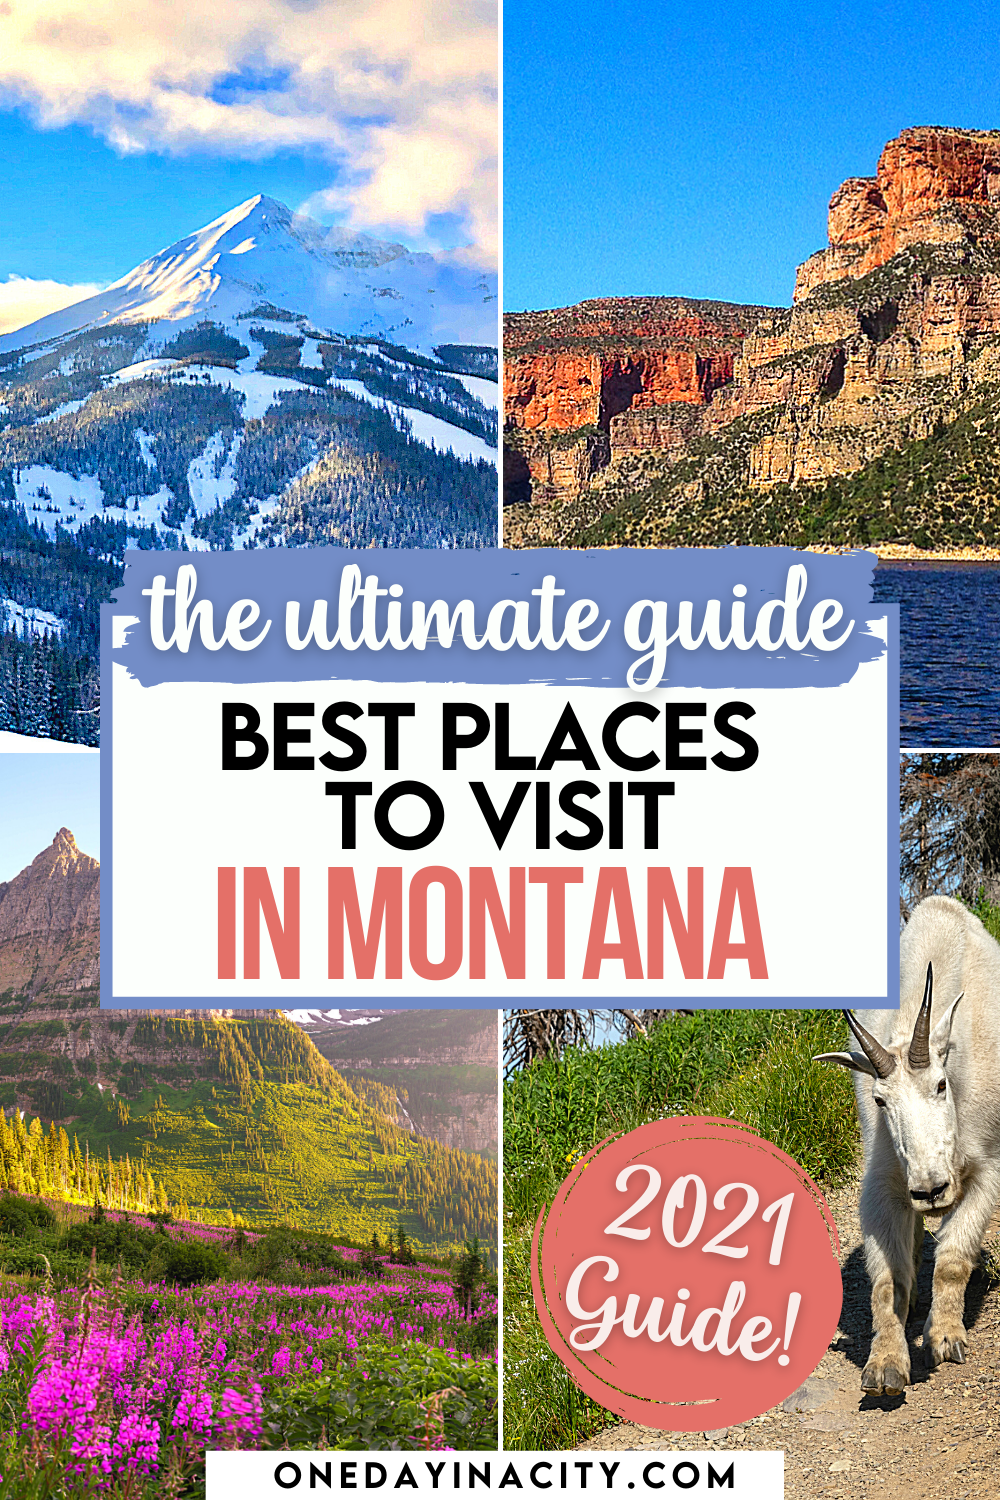 Best Places to Visit in Montana: Local's Guide for